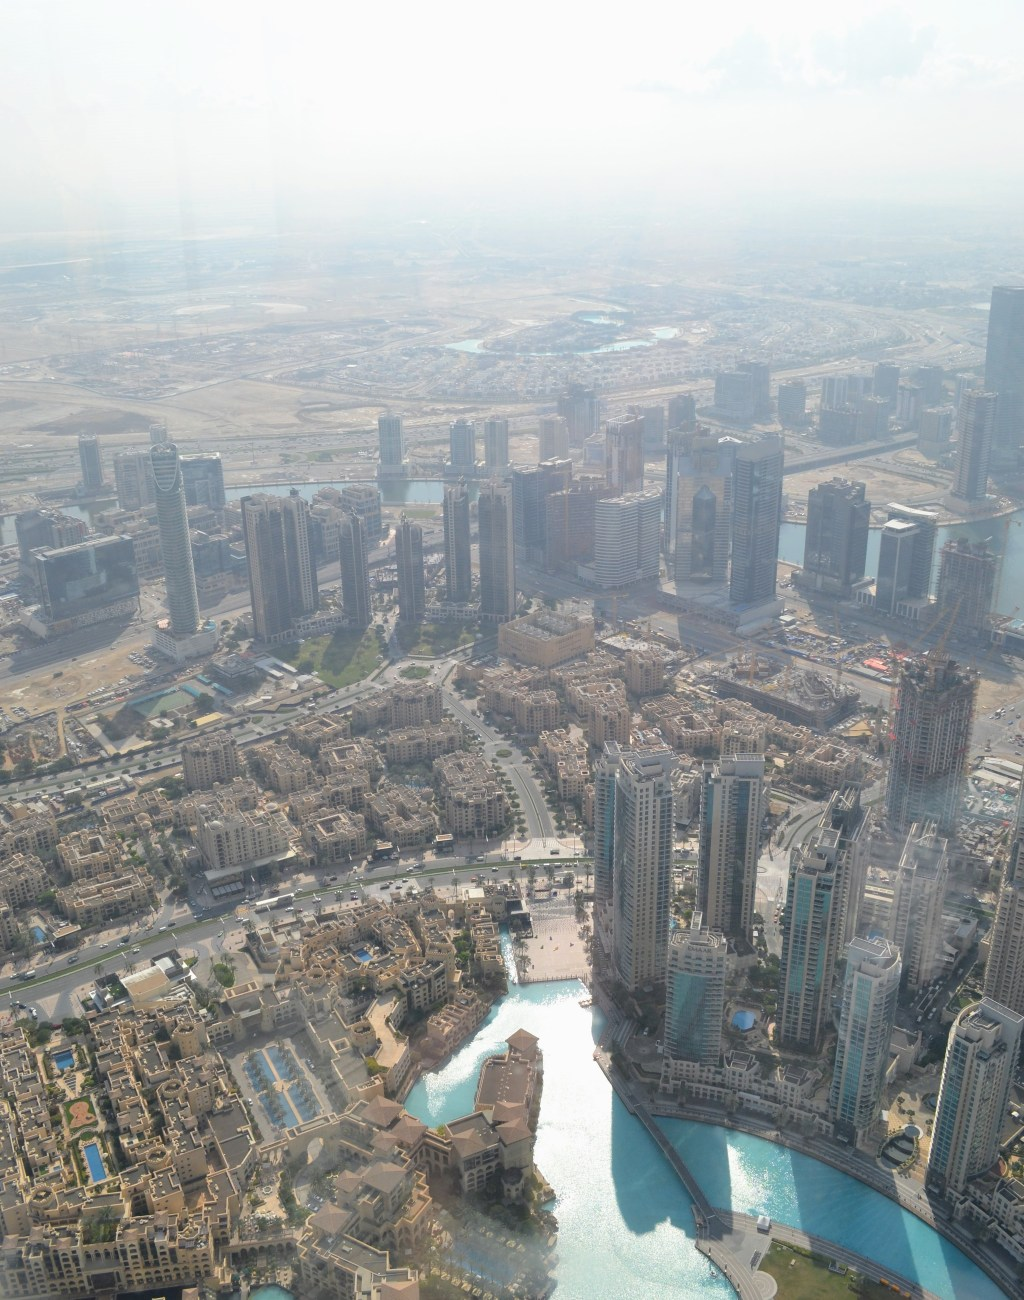 The faraway view from the At the Top viewing deck on the Burj Khalifa